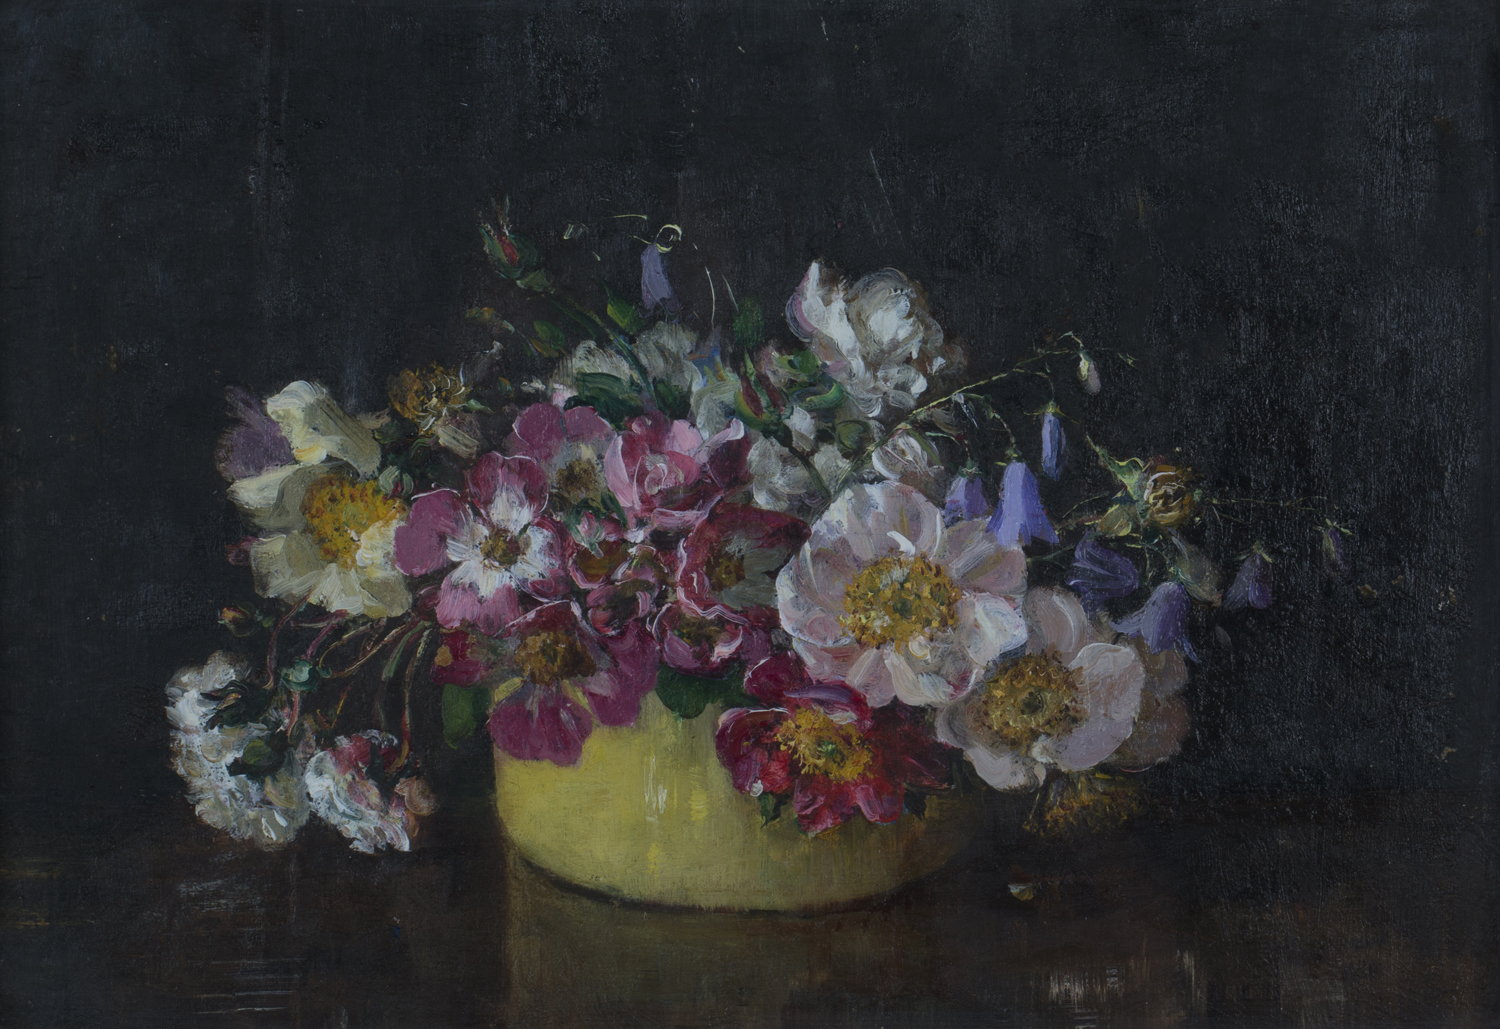 Lot 49 - Emily Beatrice Bland - 'Single Roses in a Yellow Bowl', early 20th century oil on board, artist's